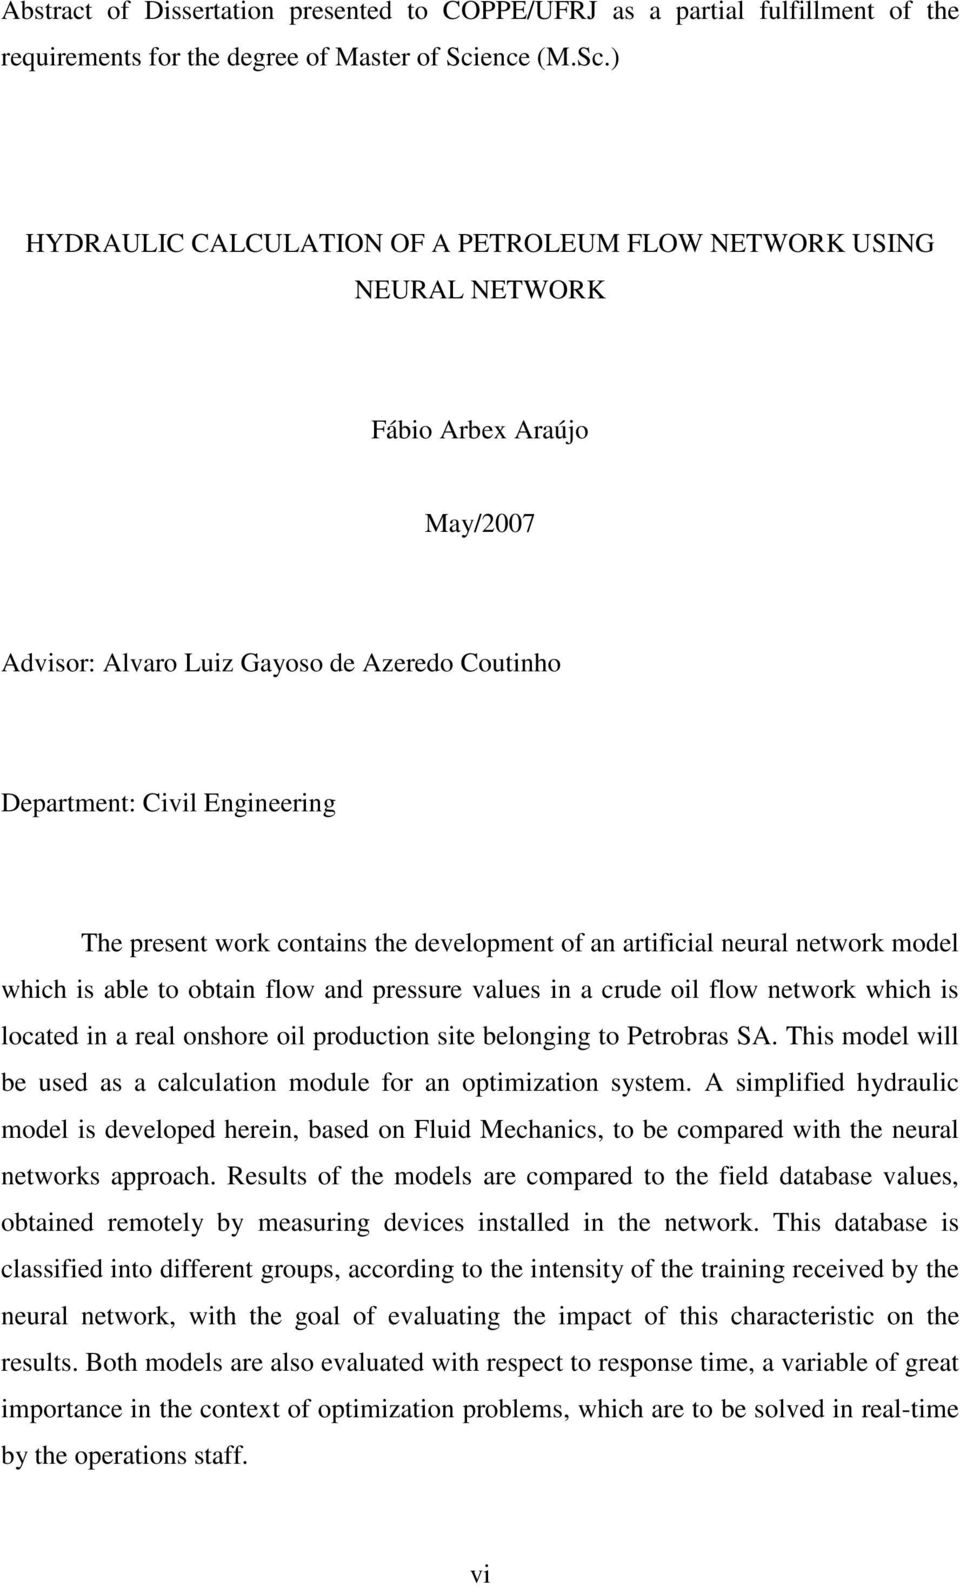 ) HYDRAULIC CALCULATION OF A PETROLEUM FLOW NETWORK USING NEURAL NETWORK Fábio Arbex Araújo May/2007 Advisor: Alvaro Luiz Gayoso de Azeredo Coutinho Department: Civil Engineering The present work